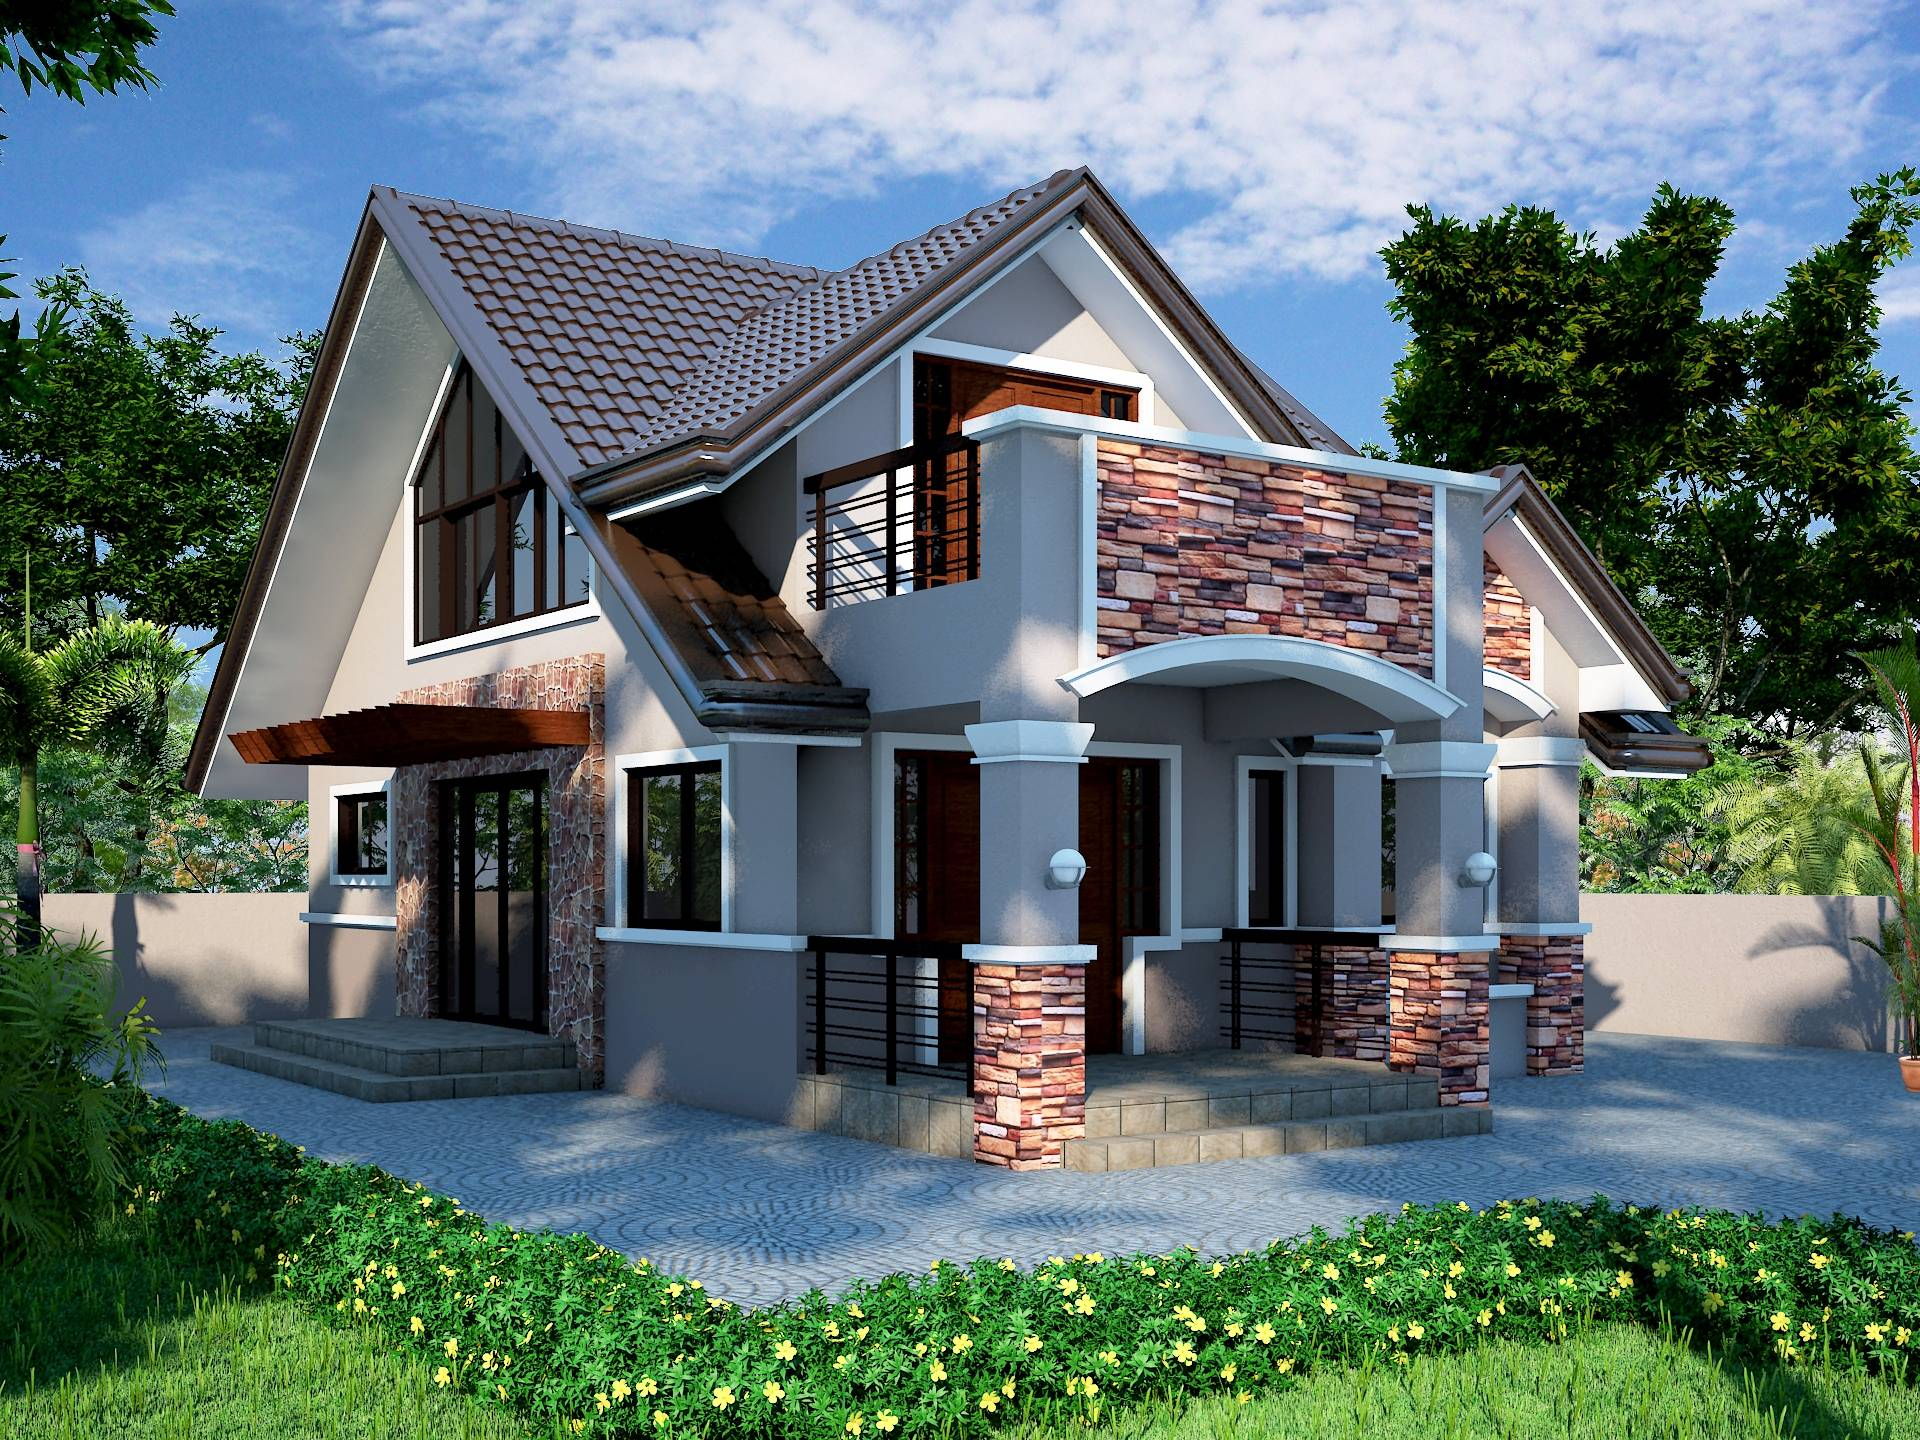 Attic Roof Design Philippines Pinterest House Plans 54290